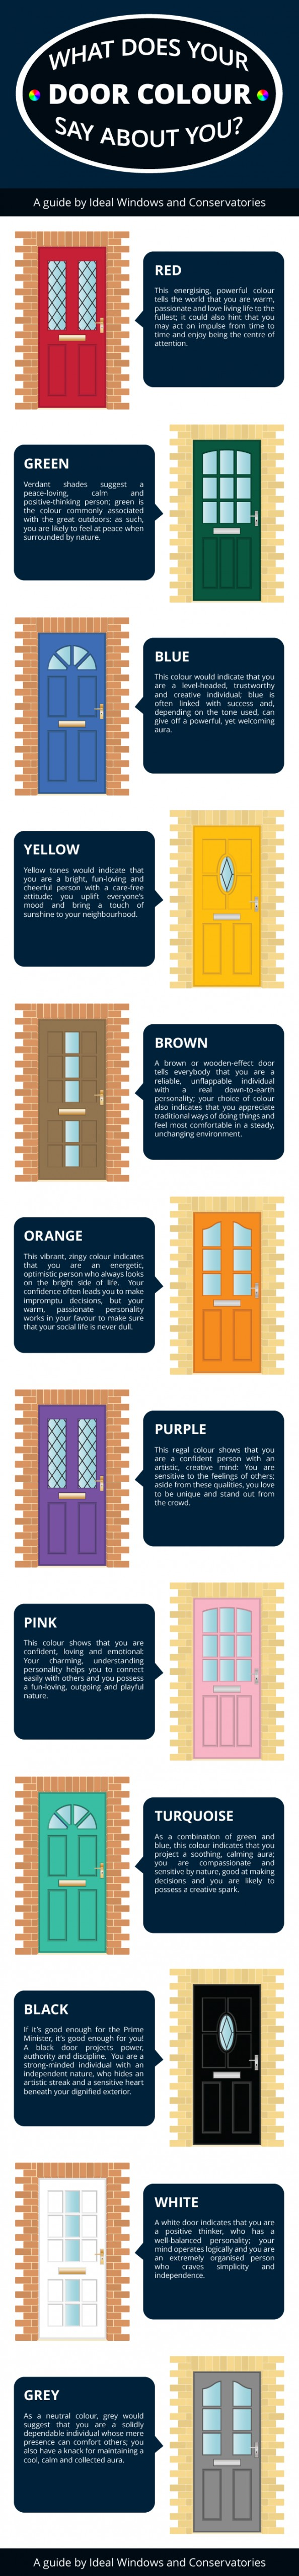 What does your door colour say about you infographic infographics